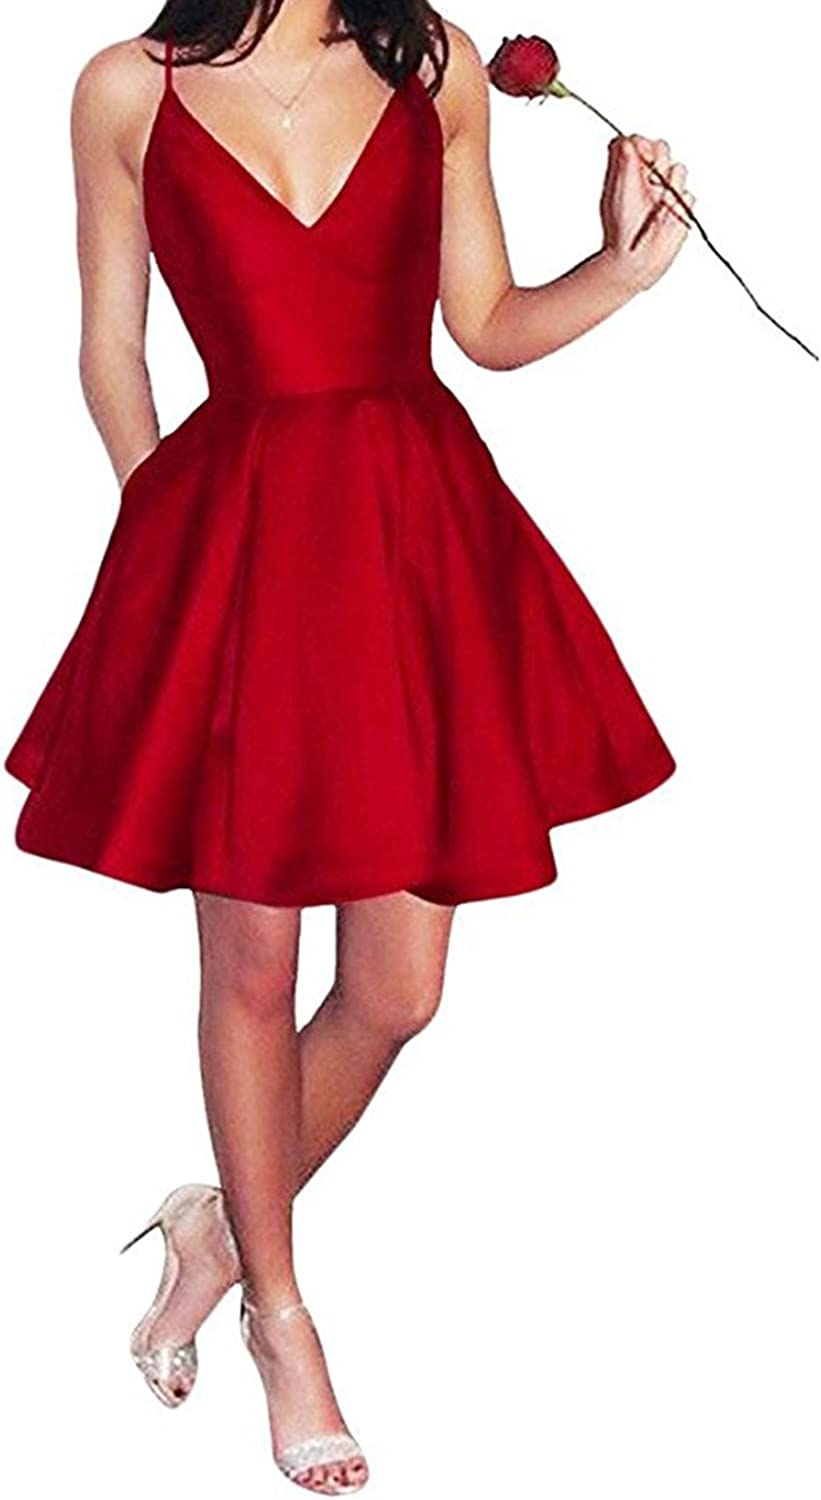 Alilith Z Womens Spaghetti Strap Satin Homecoming Party Dresses Deep V Neck Short